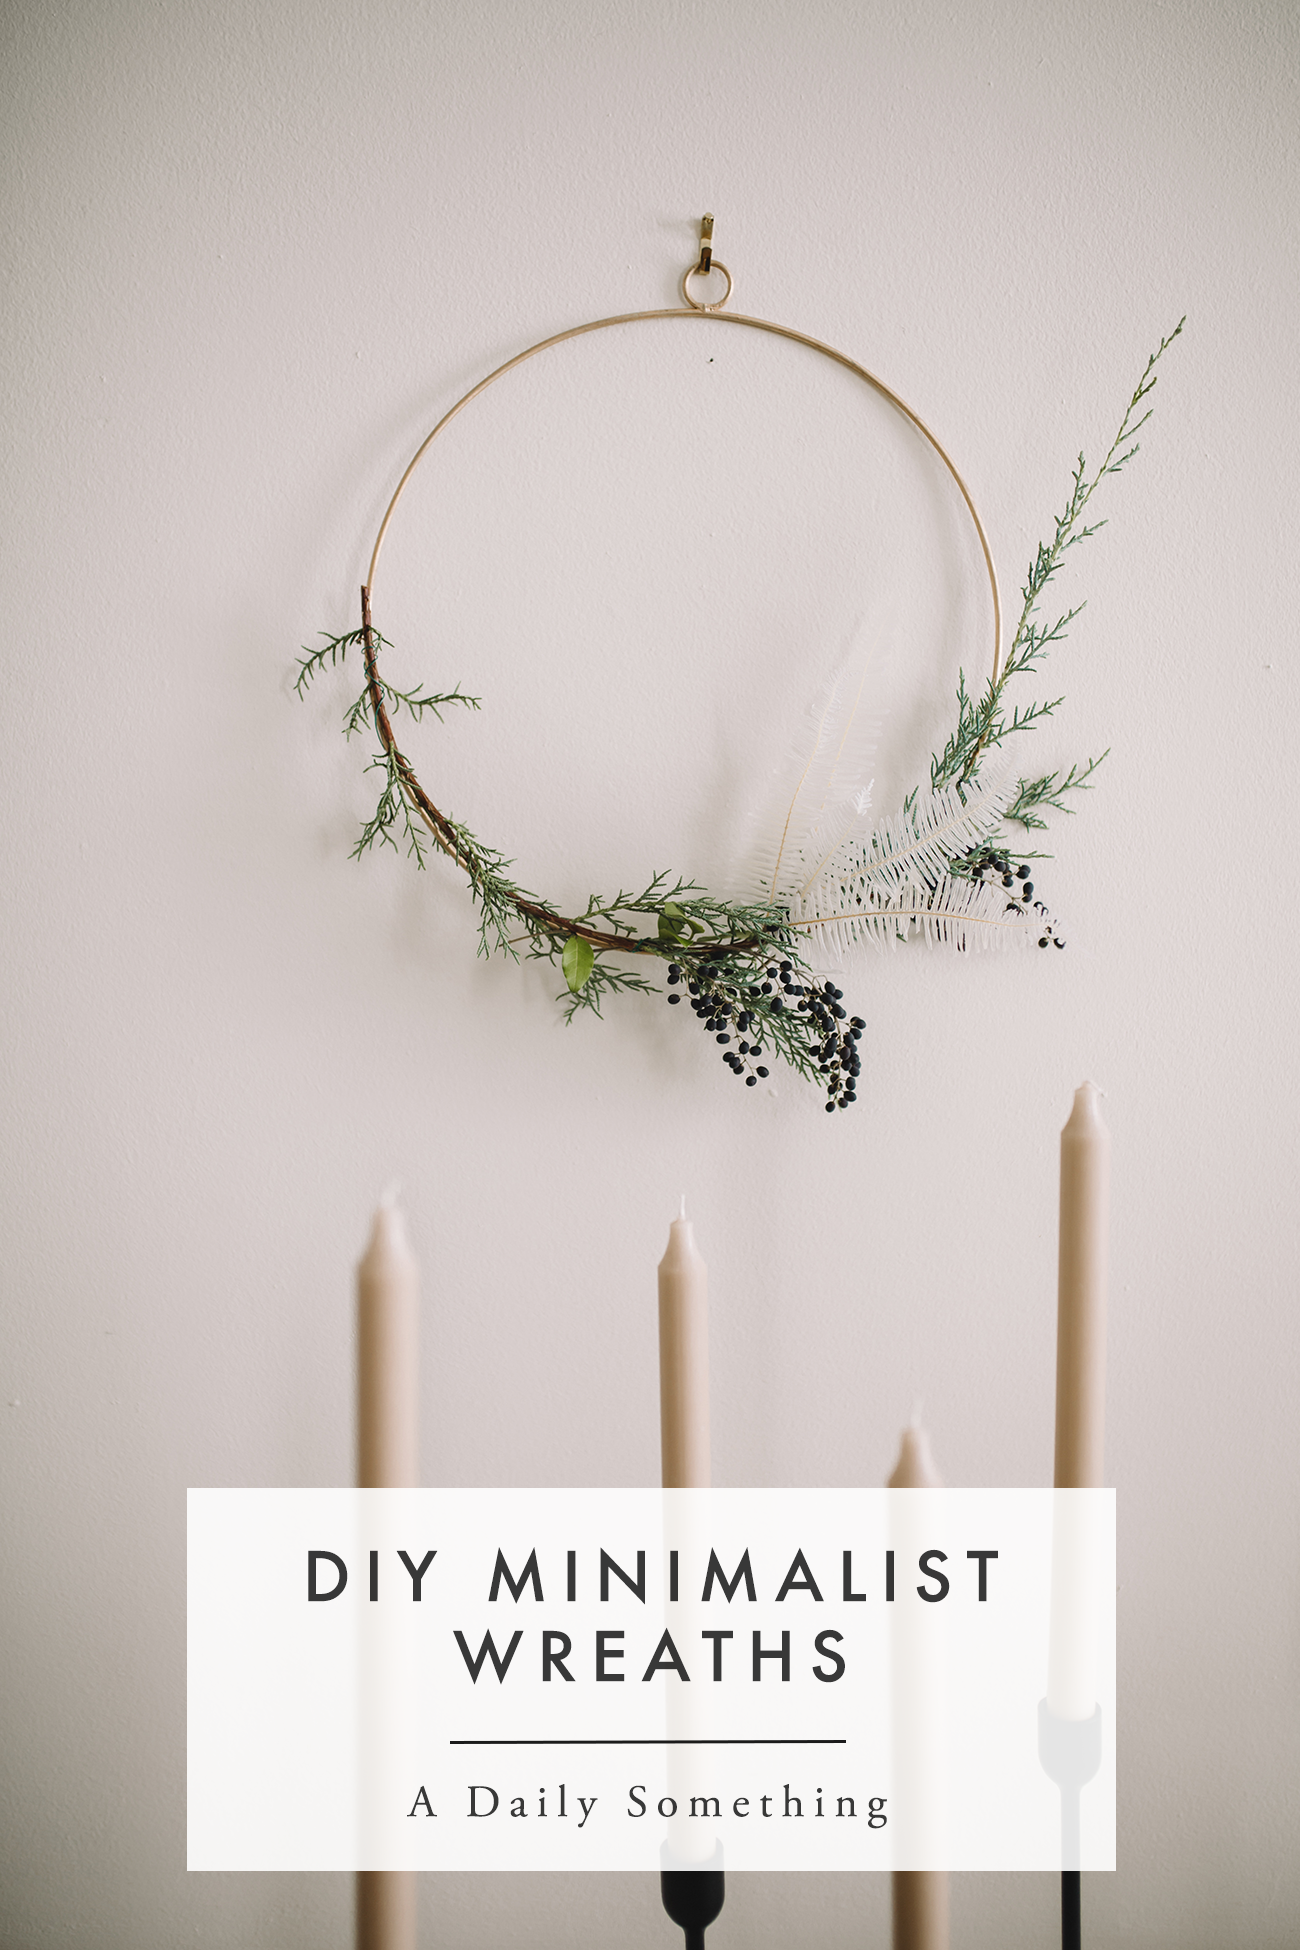 Diy Mantel Garland Minimalist Wreaths And Styling A Dessert Buffet A Daily Something Christmas Wreaths Diy Fall Decor Wreaths Wreaths